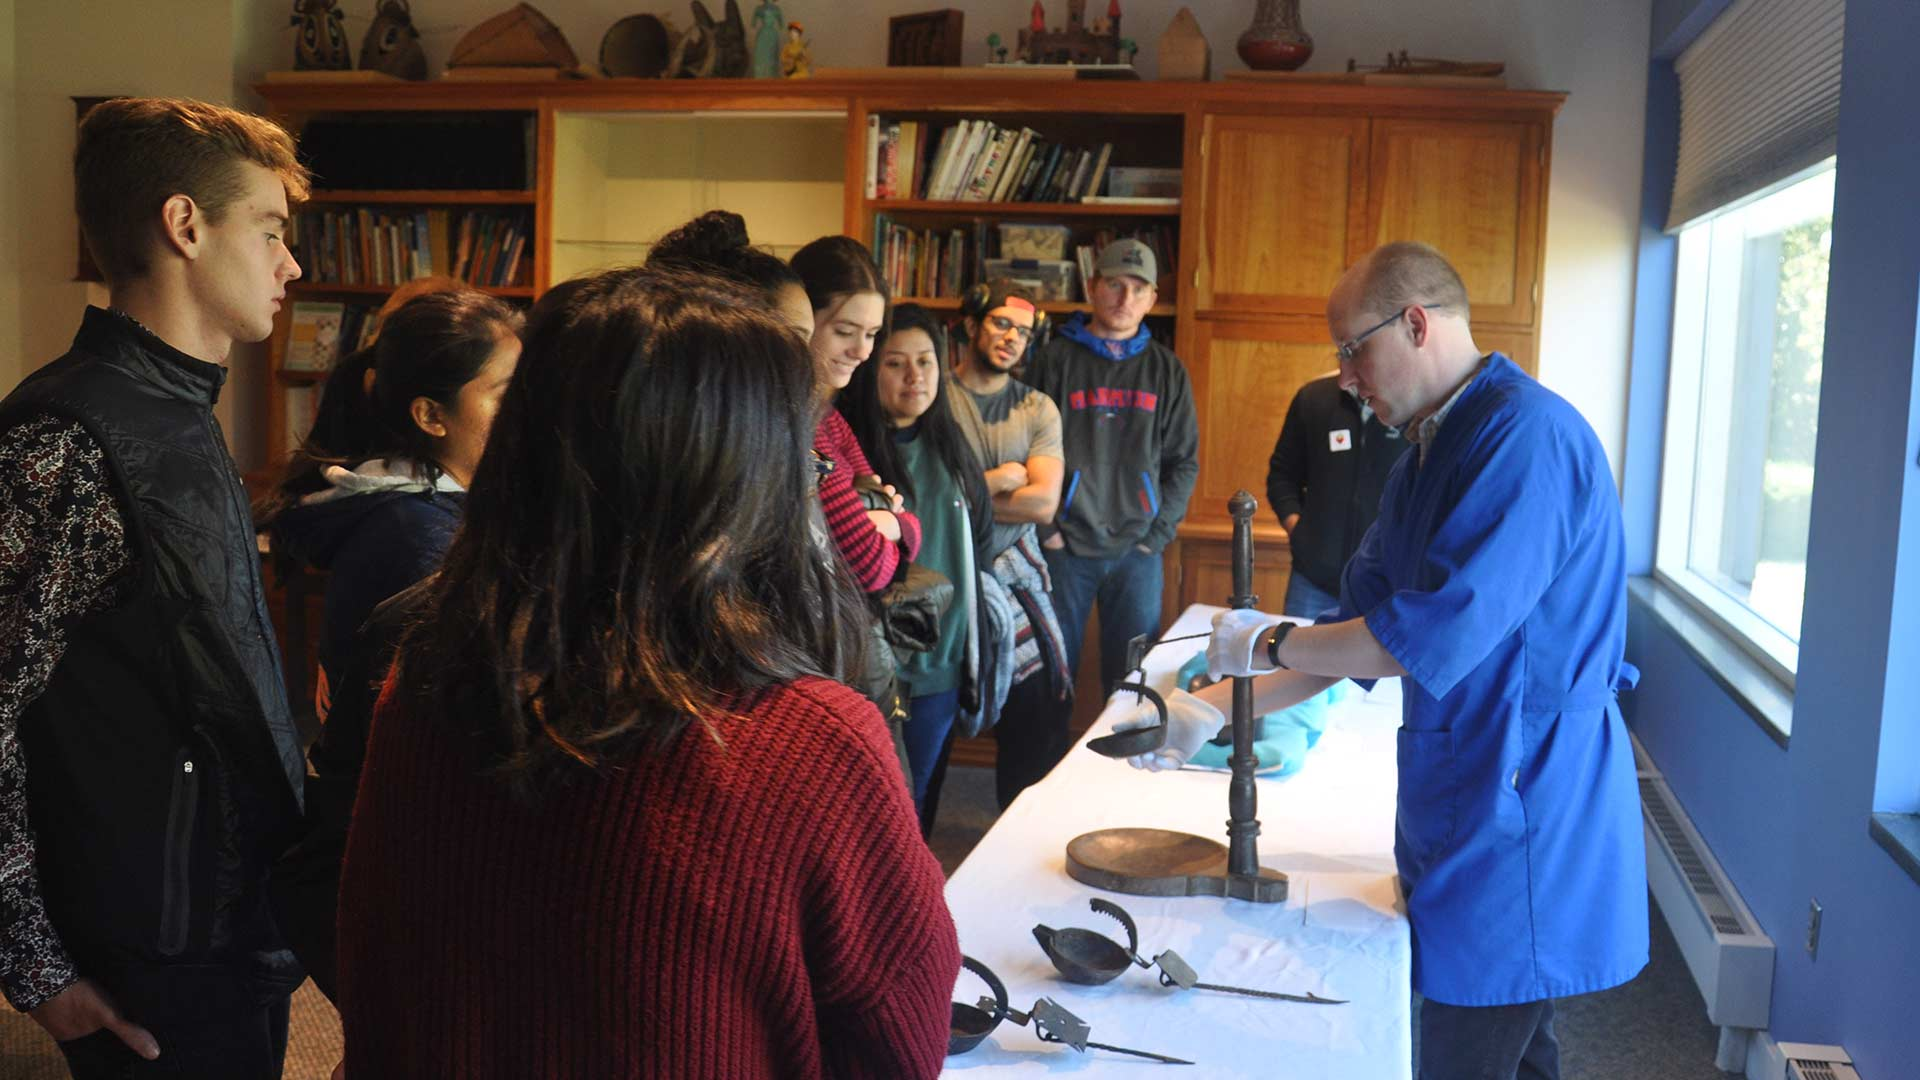 Collections staff member shows a wooden artifact to a group of students